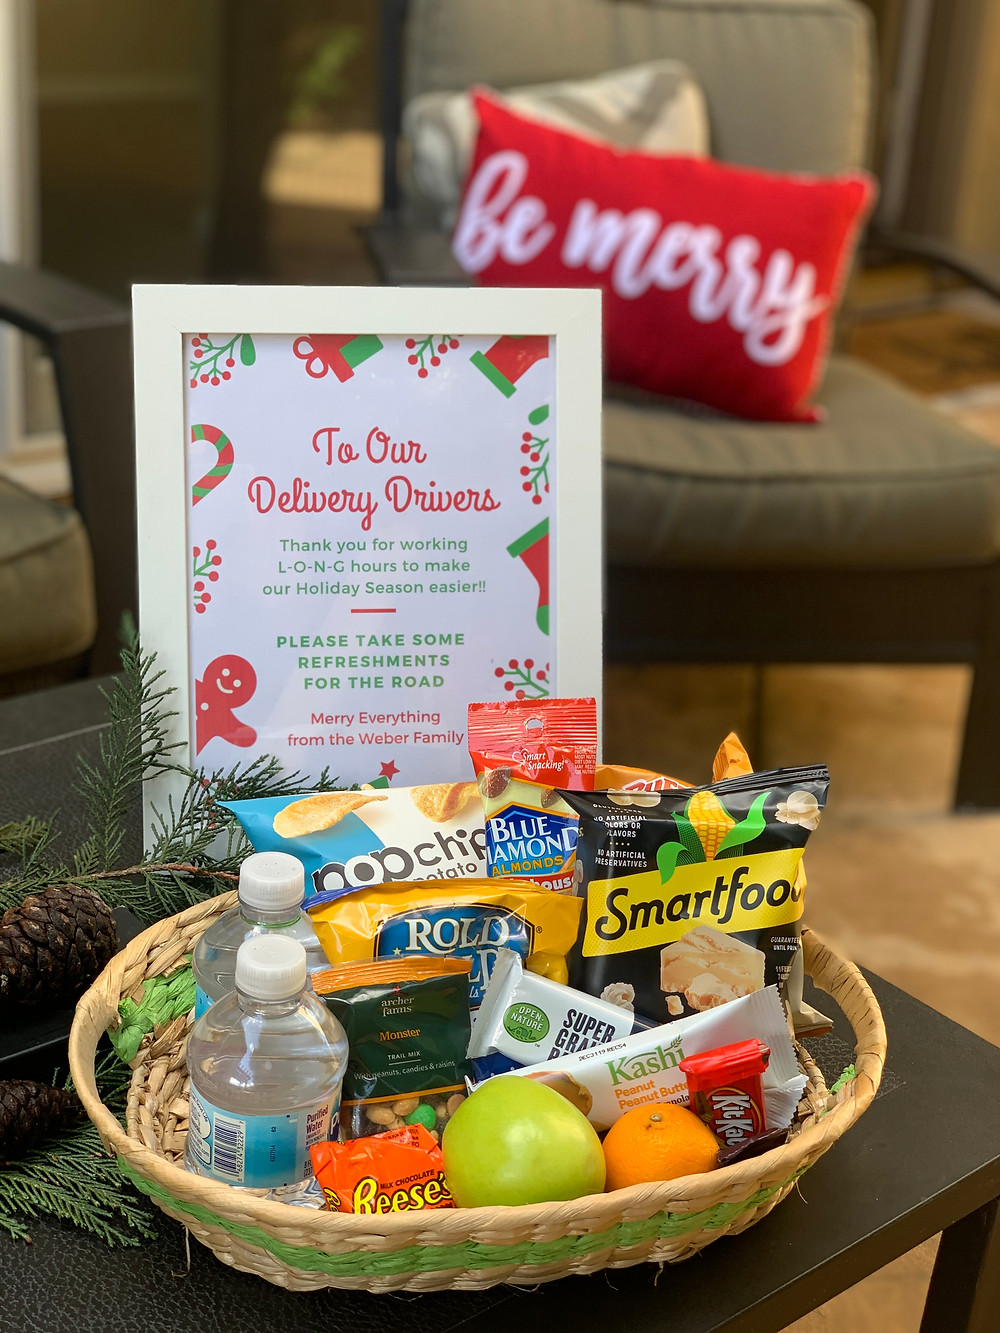 Basket of snacks and drinks for delivery drivers